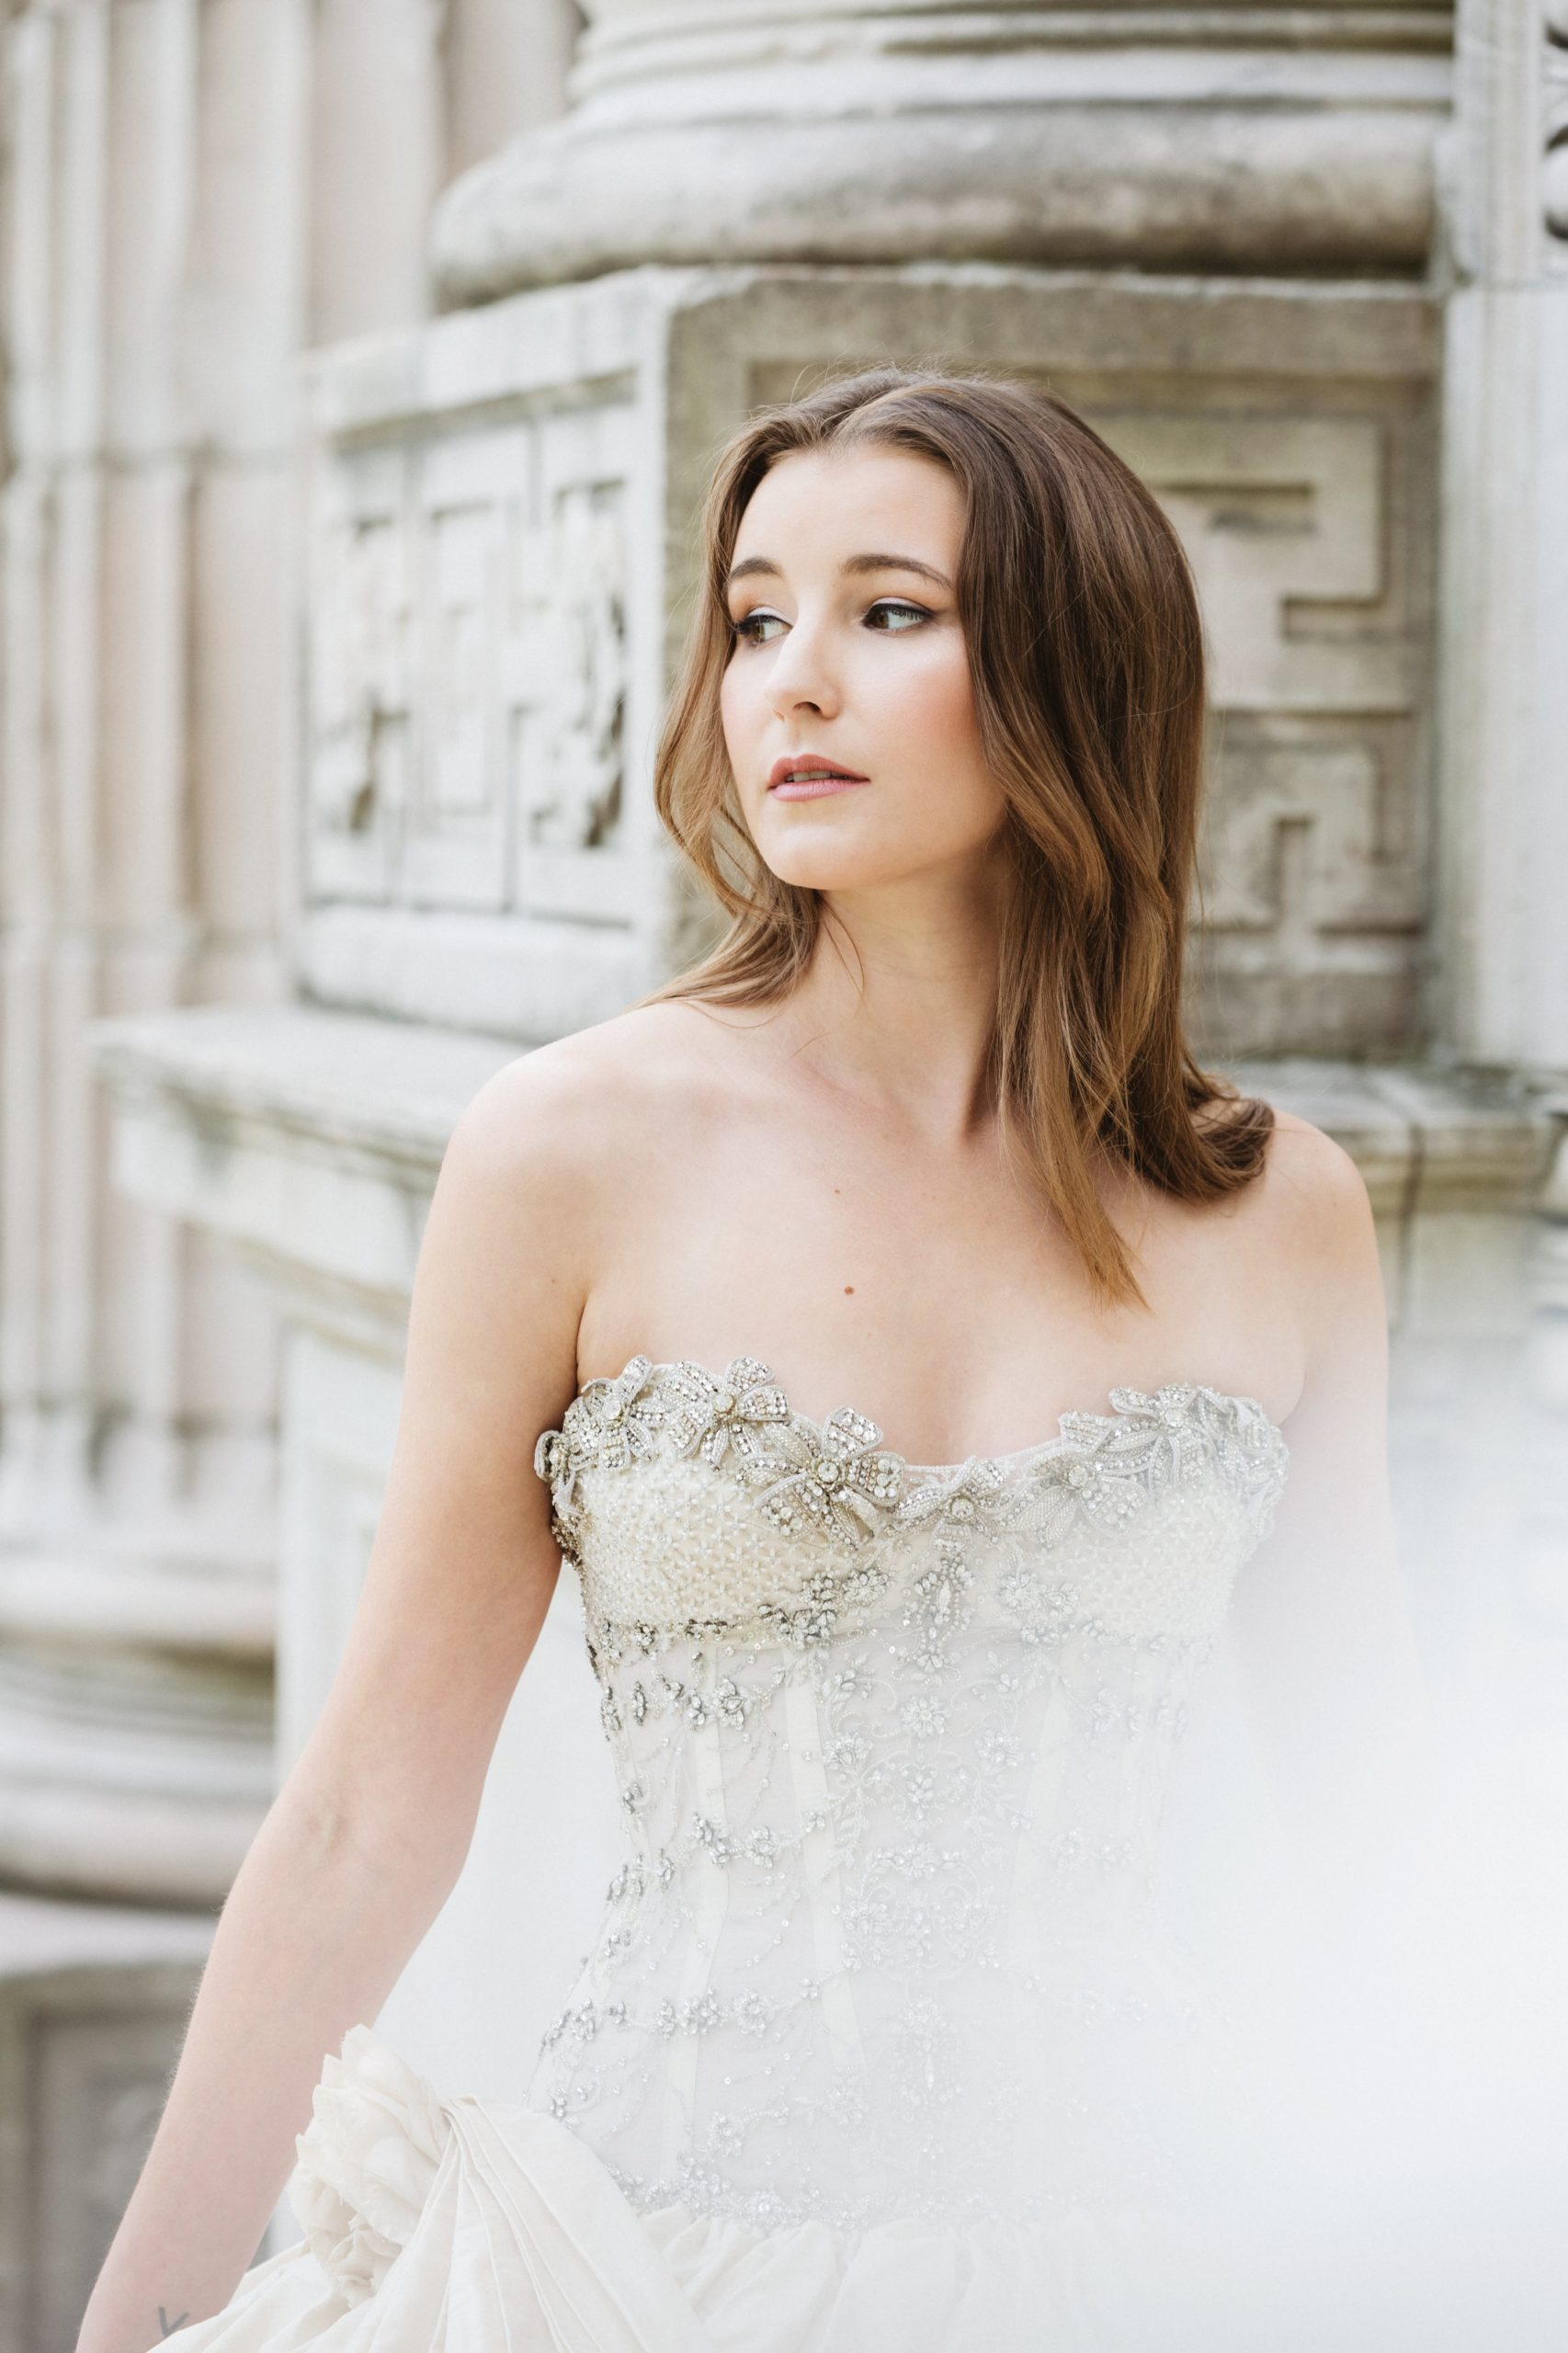 woman with calm, collected wedding makeup, wearing a wedding dress against an old building.